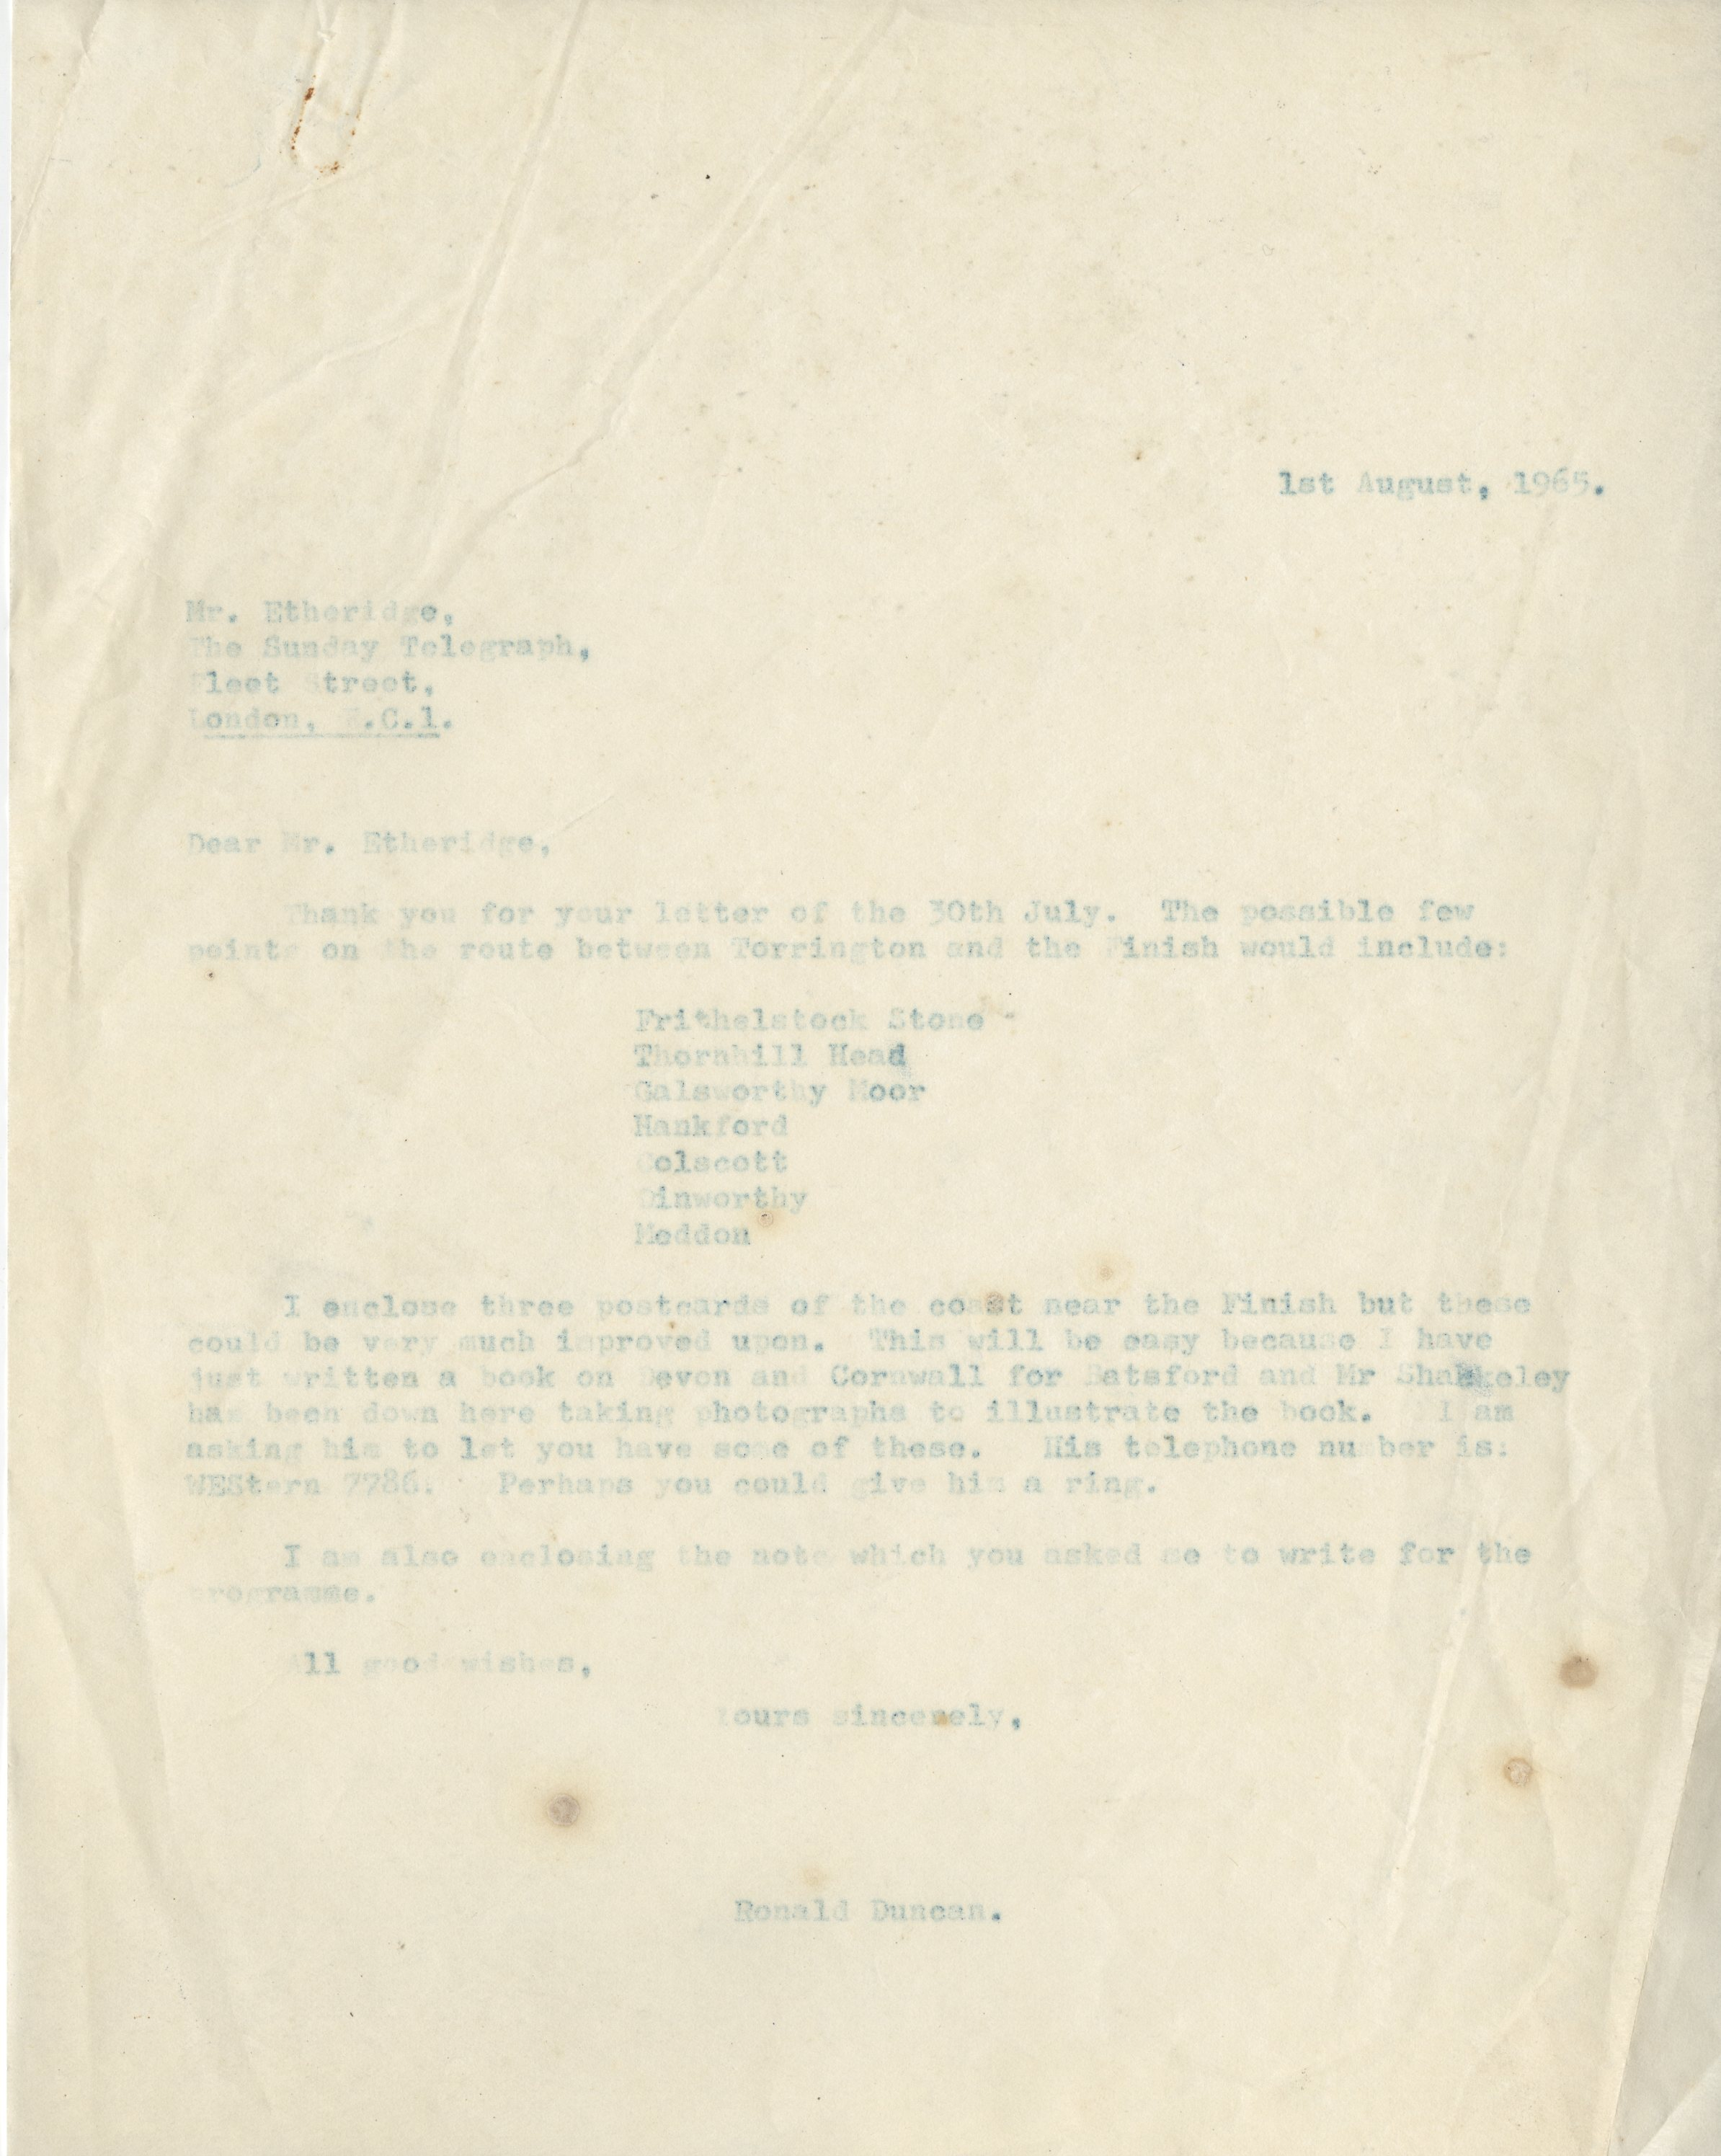 EUL MS 397/1041 Letter from Ronald Duncan to Mr Etheridge of The Sunday Telegraph  (1 August 1965)